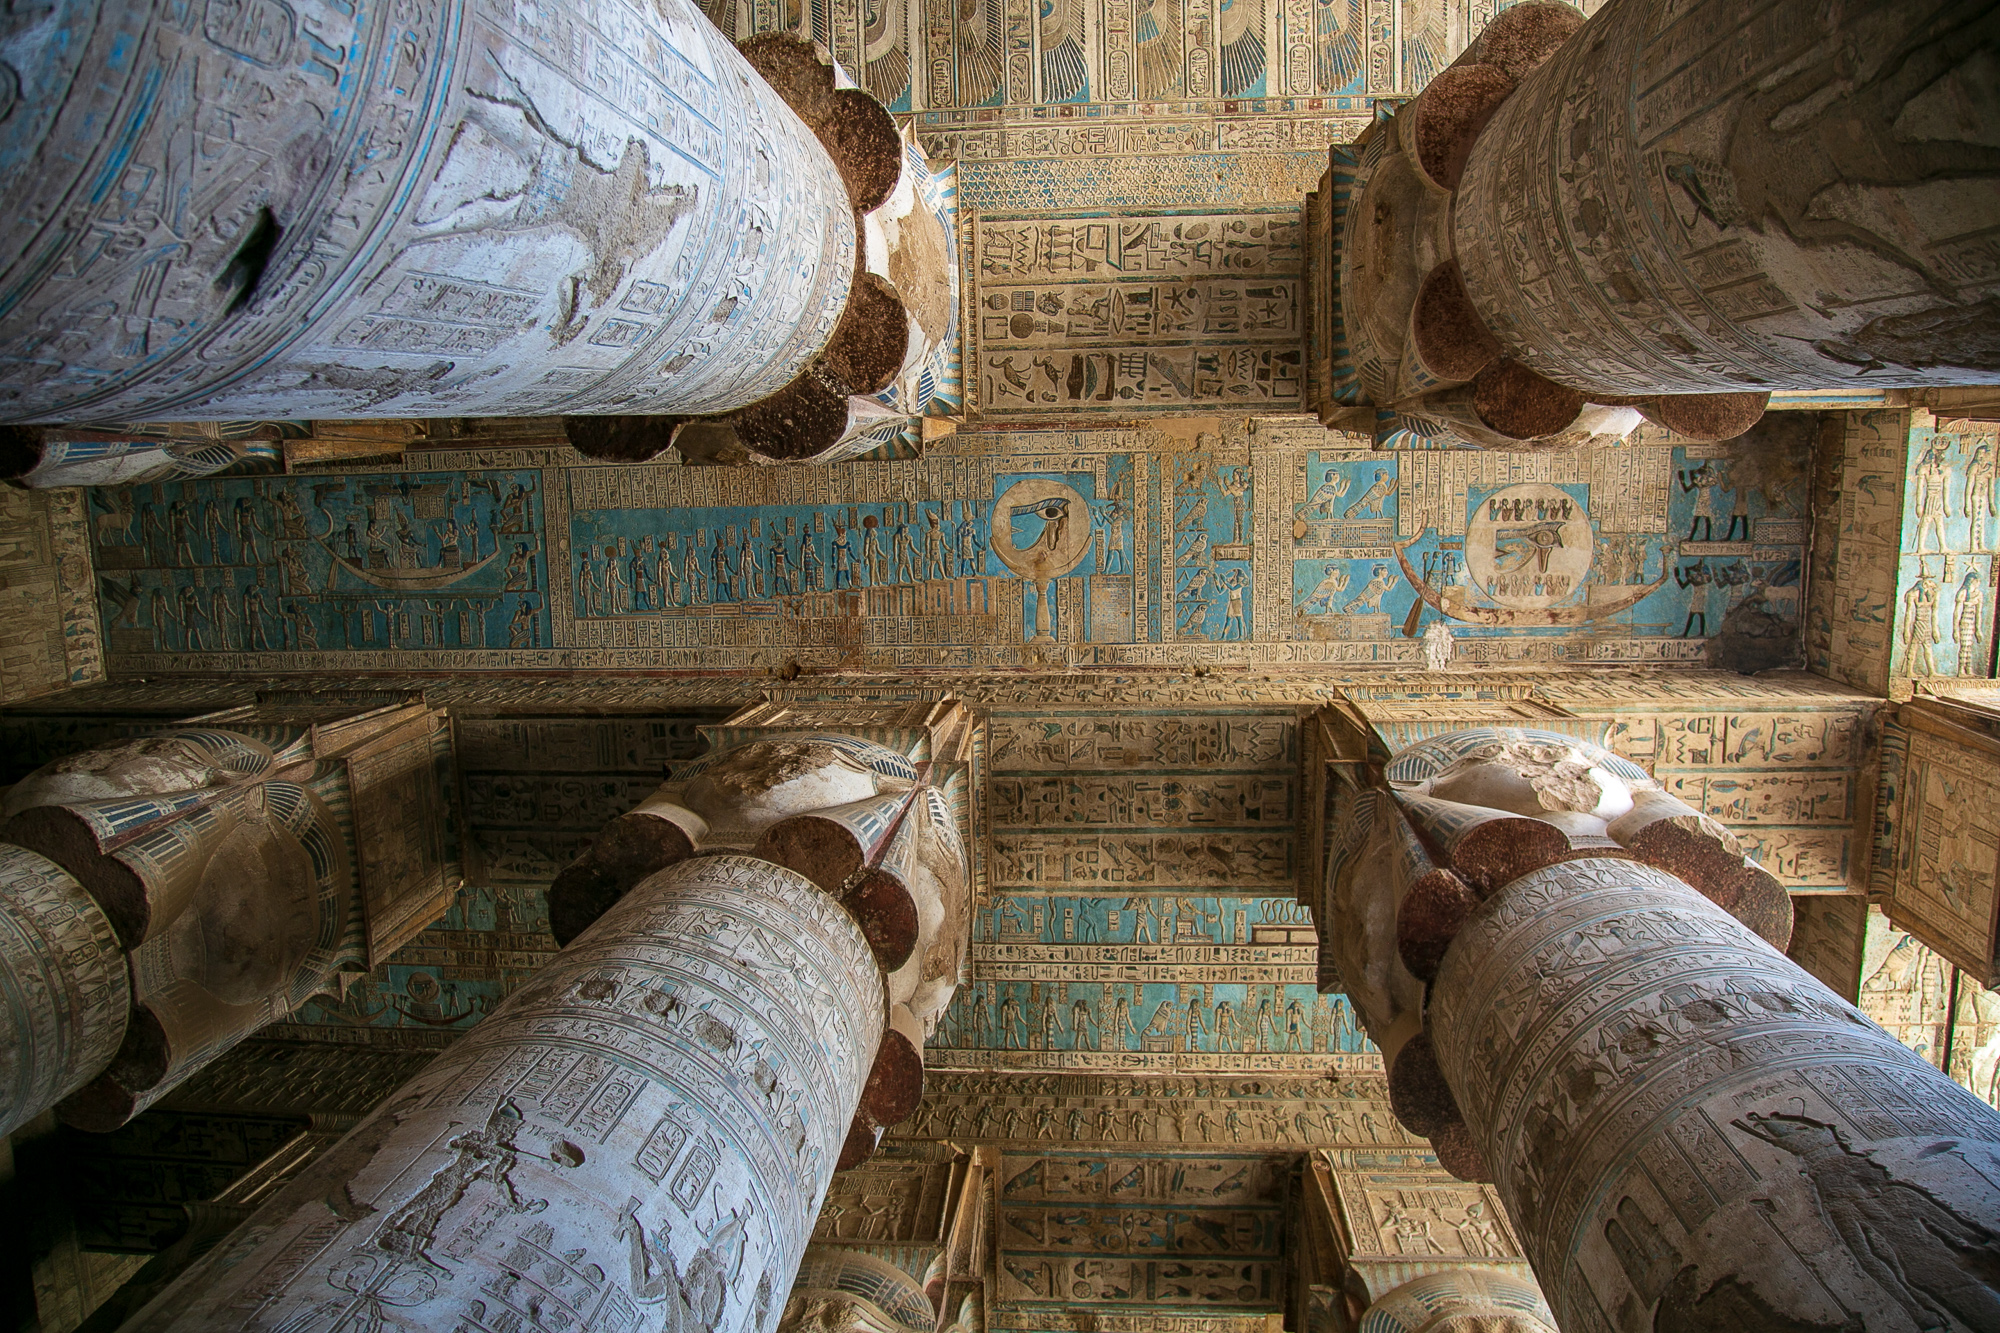 Greek Zodiac hiegroglyps carved into the ceiling of the Temple of Hathor in Dendera, Egypt © Kim I. Mott, all rights reserved